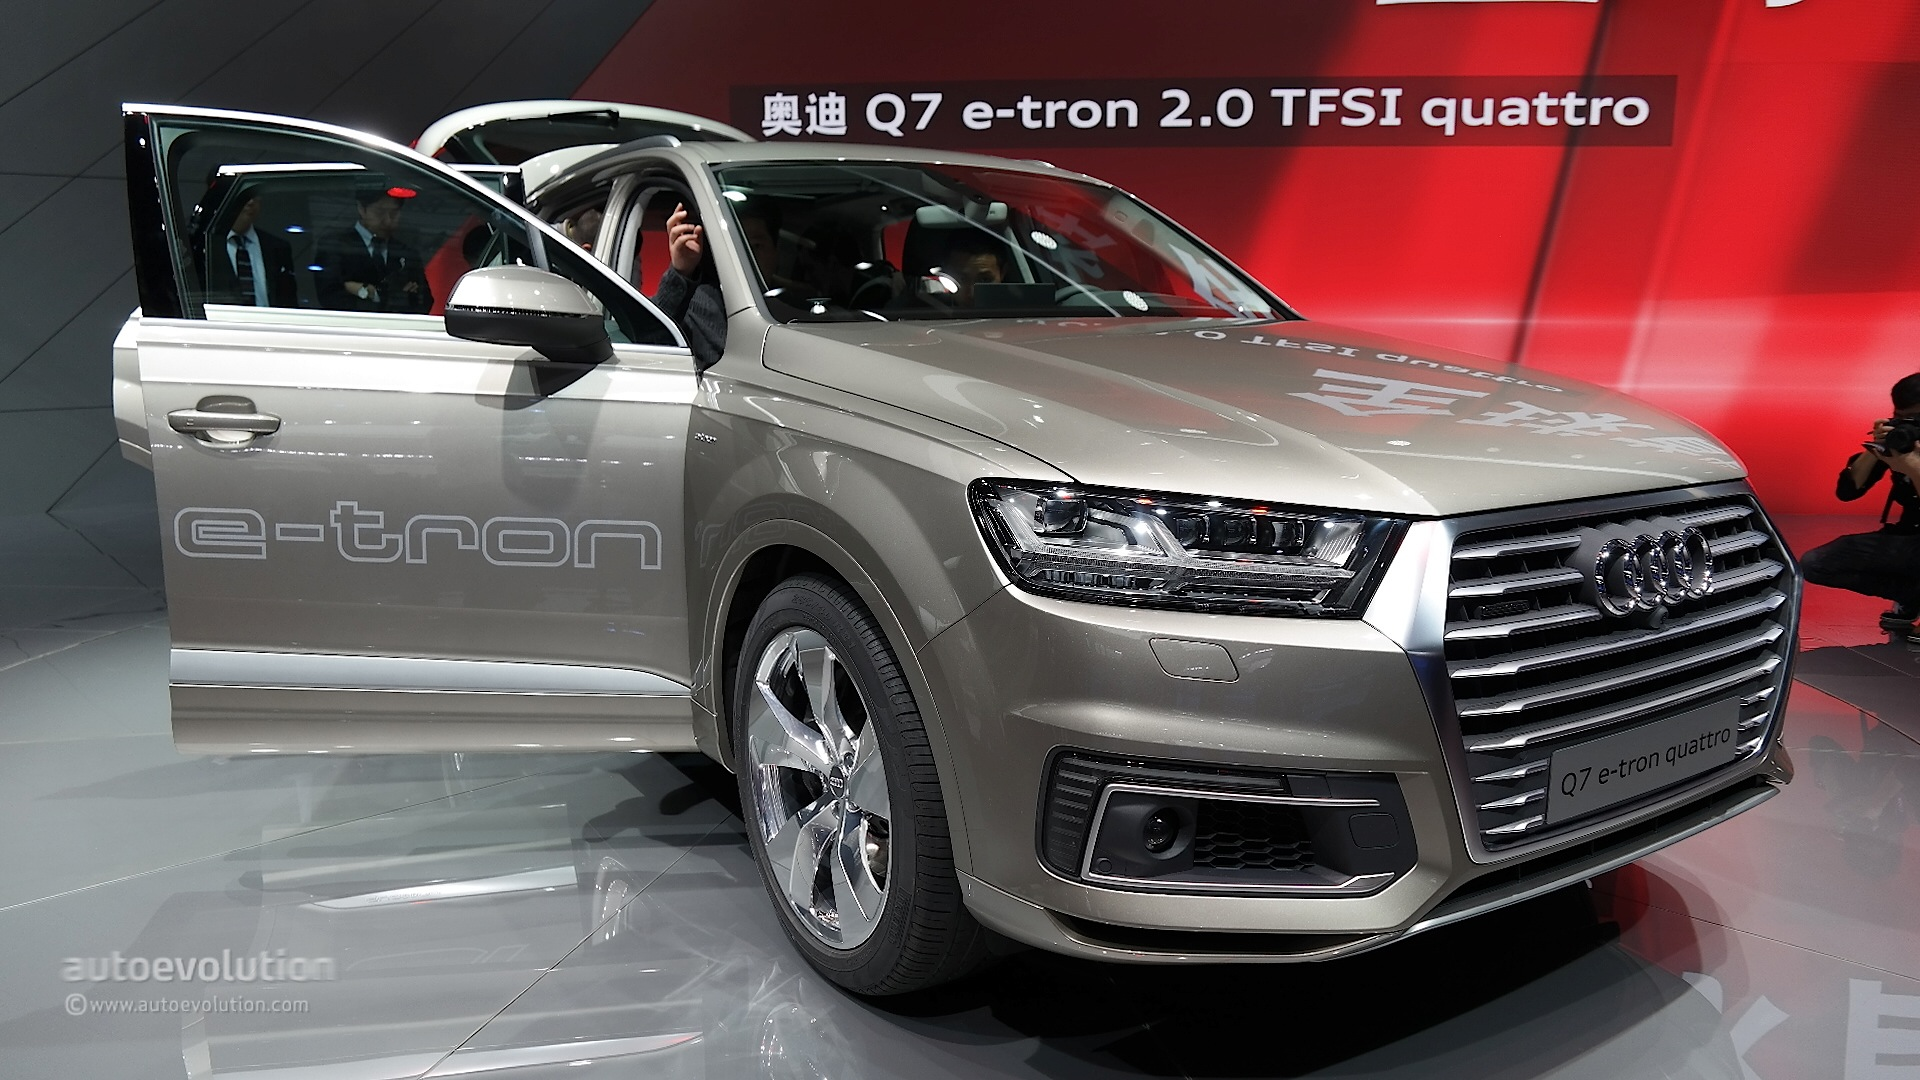 2016 audi q7 debuts in china with 2 0 tfsi e tron phev engine video live photos autoevolution. Black Bedroom Furniture Sets. Home Design Ideas